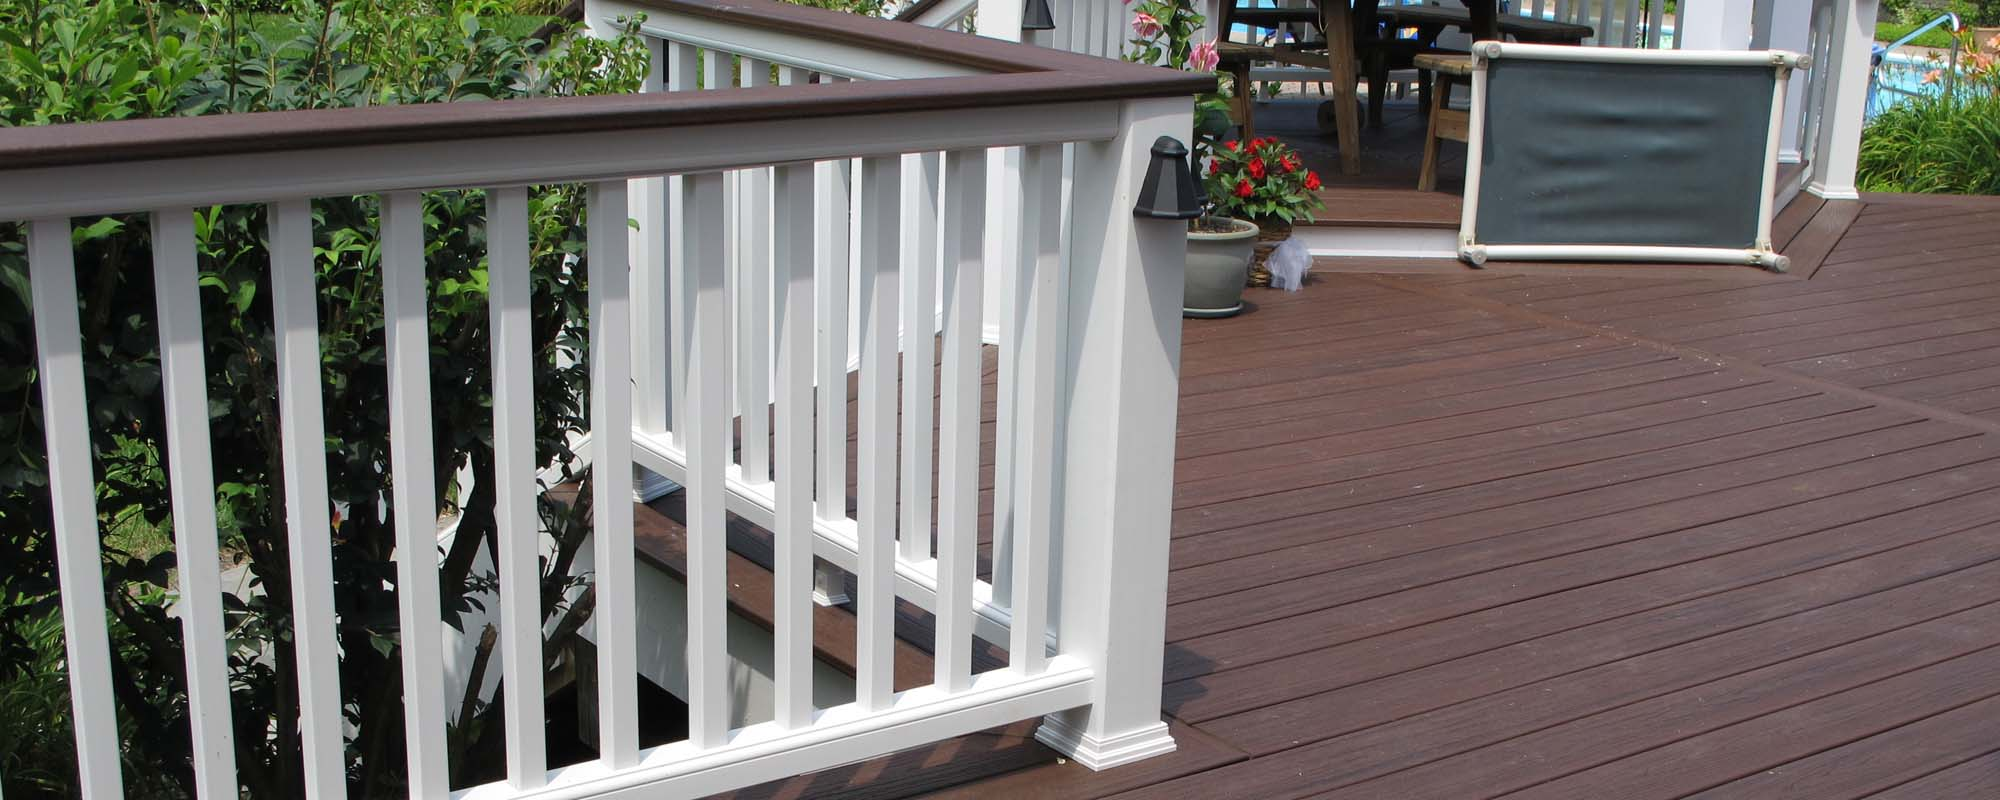 NJ deck builder building the finest custom decks at the jersey shore